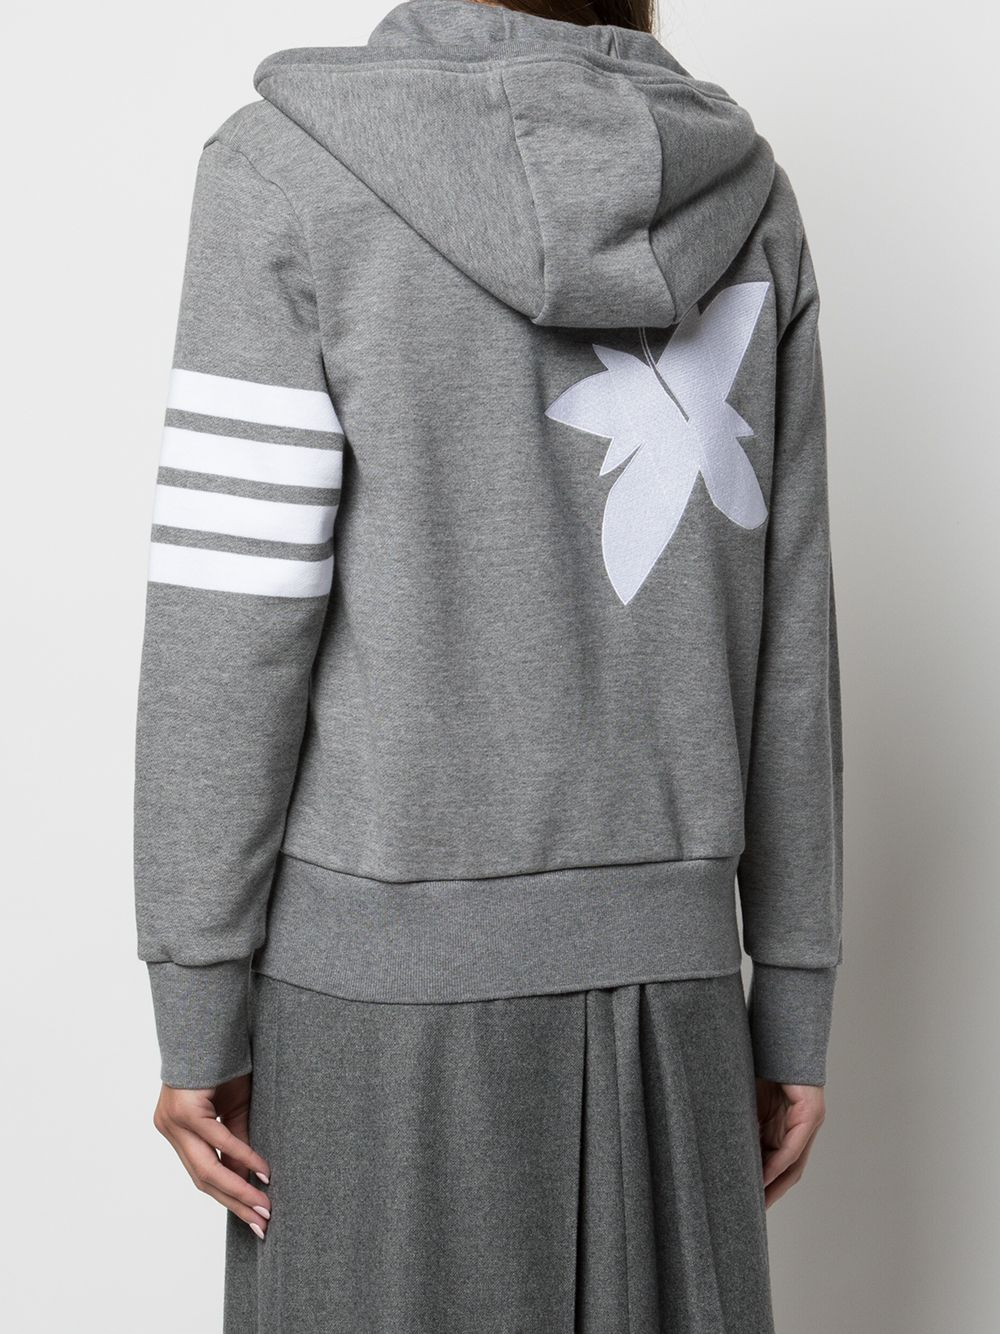 THOM BROWNE WOMEN ZIP UP HOODIE W/ 4 BAR & RWB FLORAL EMBROIDERY IN CLASSIC LOOP BACK W/ ENGINEERED 4 BAR